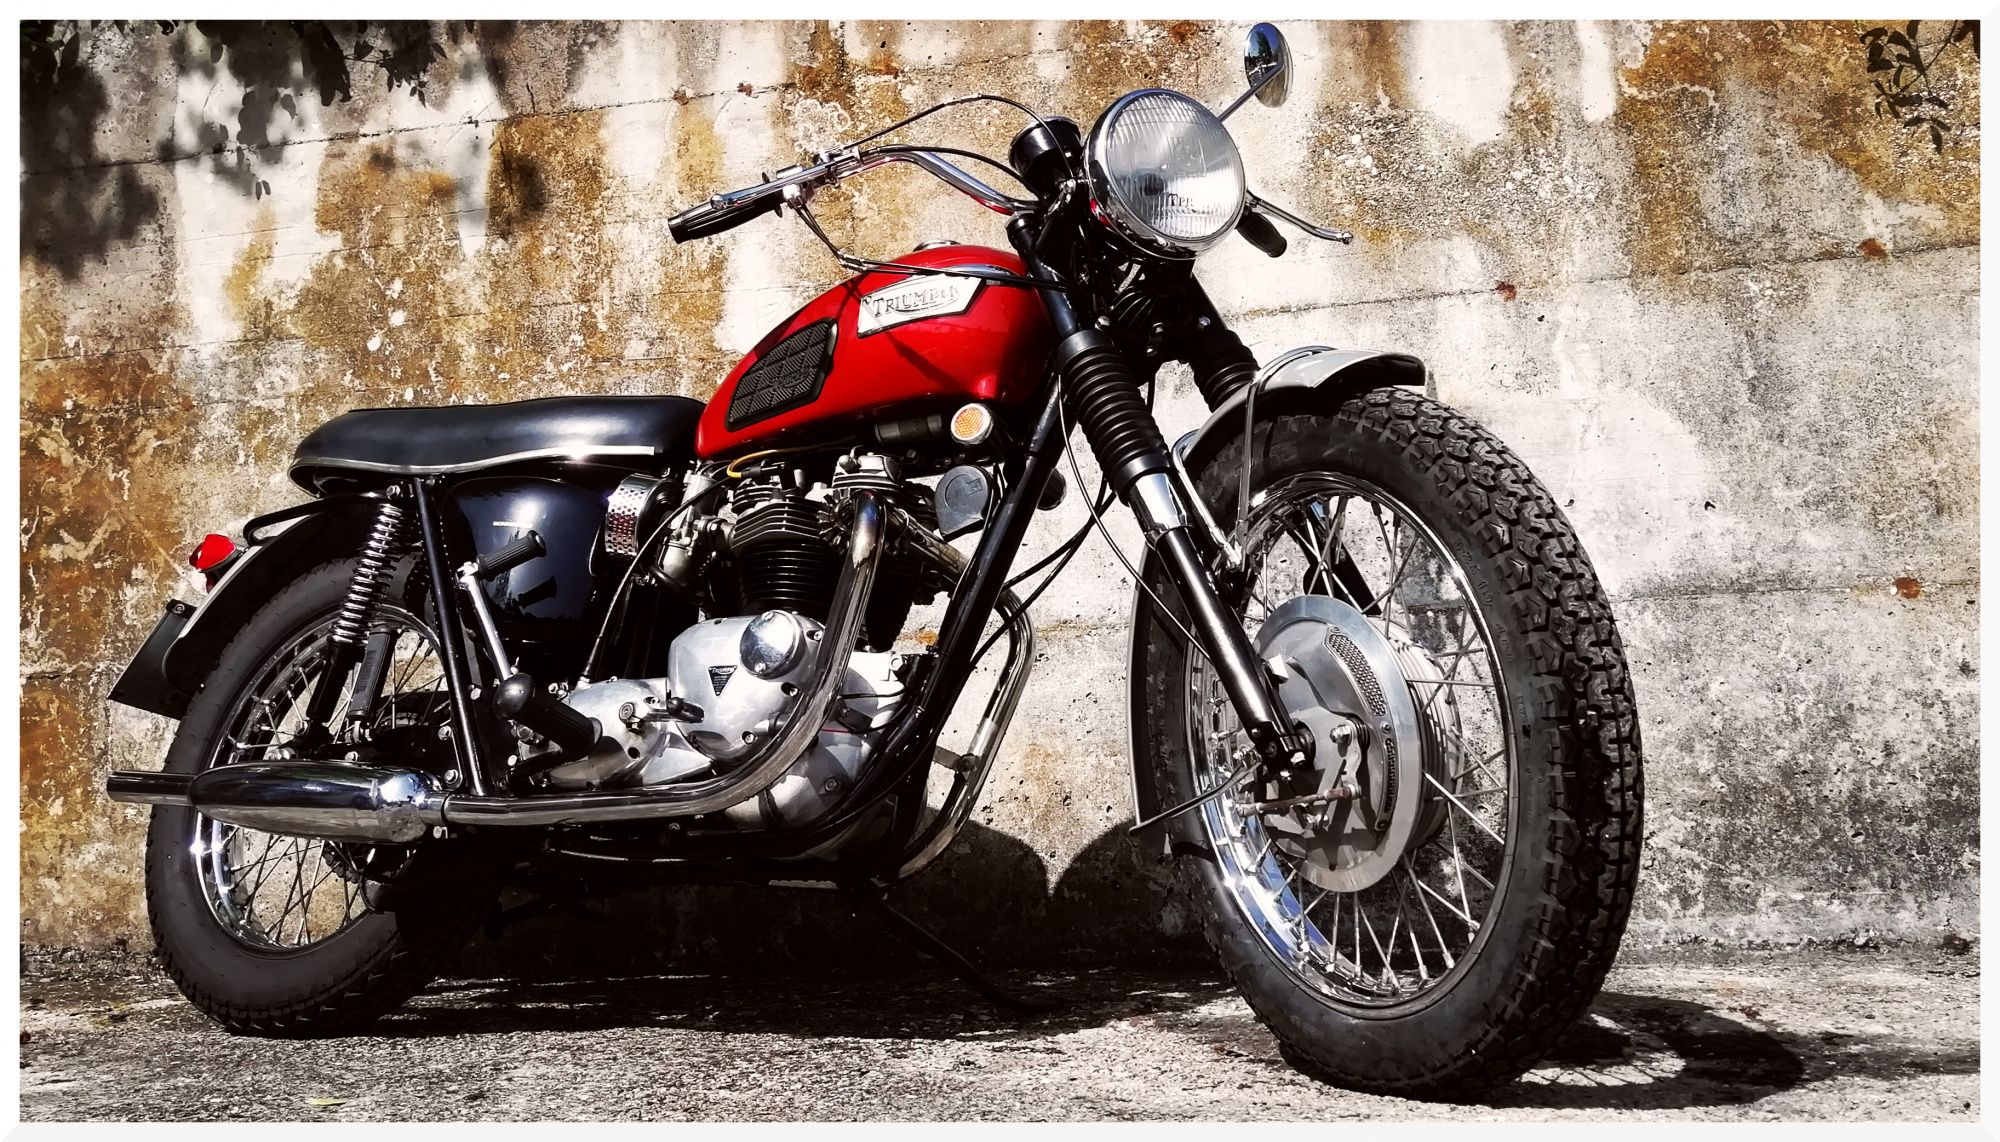 ride70s it 1969-triumph-bonneville-650-t120r 001